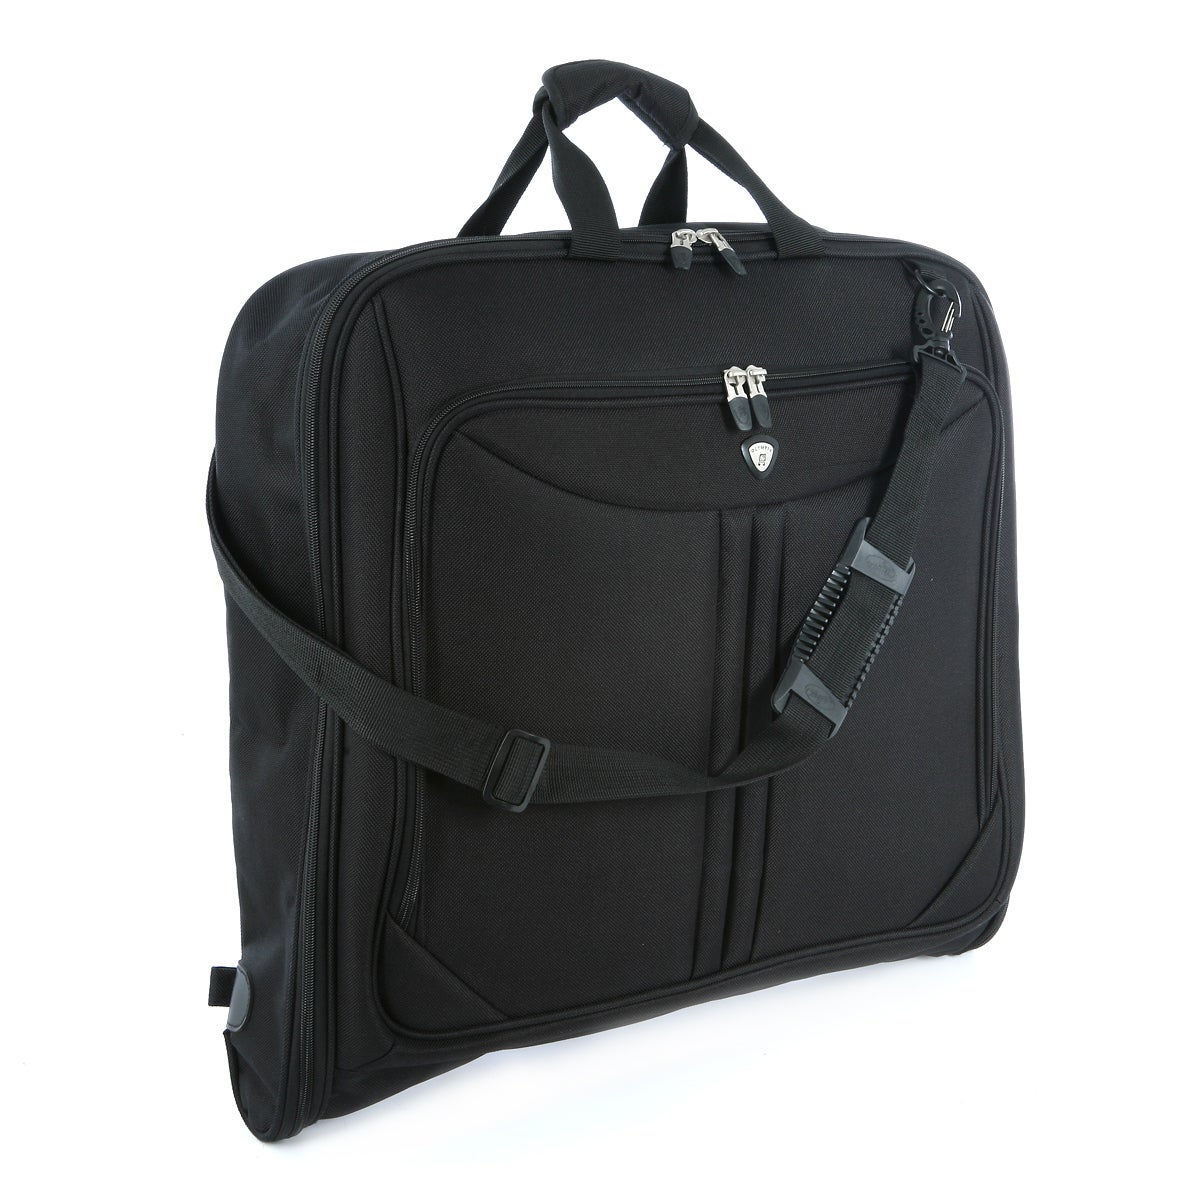 Luggage by O Olympia G-7740 Folding Garment Bag at Sears.com